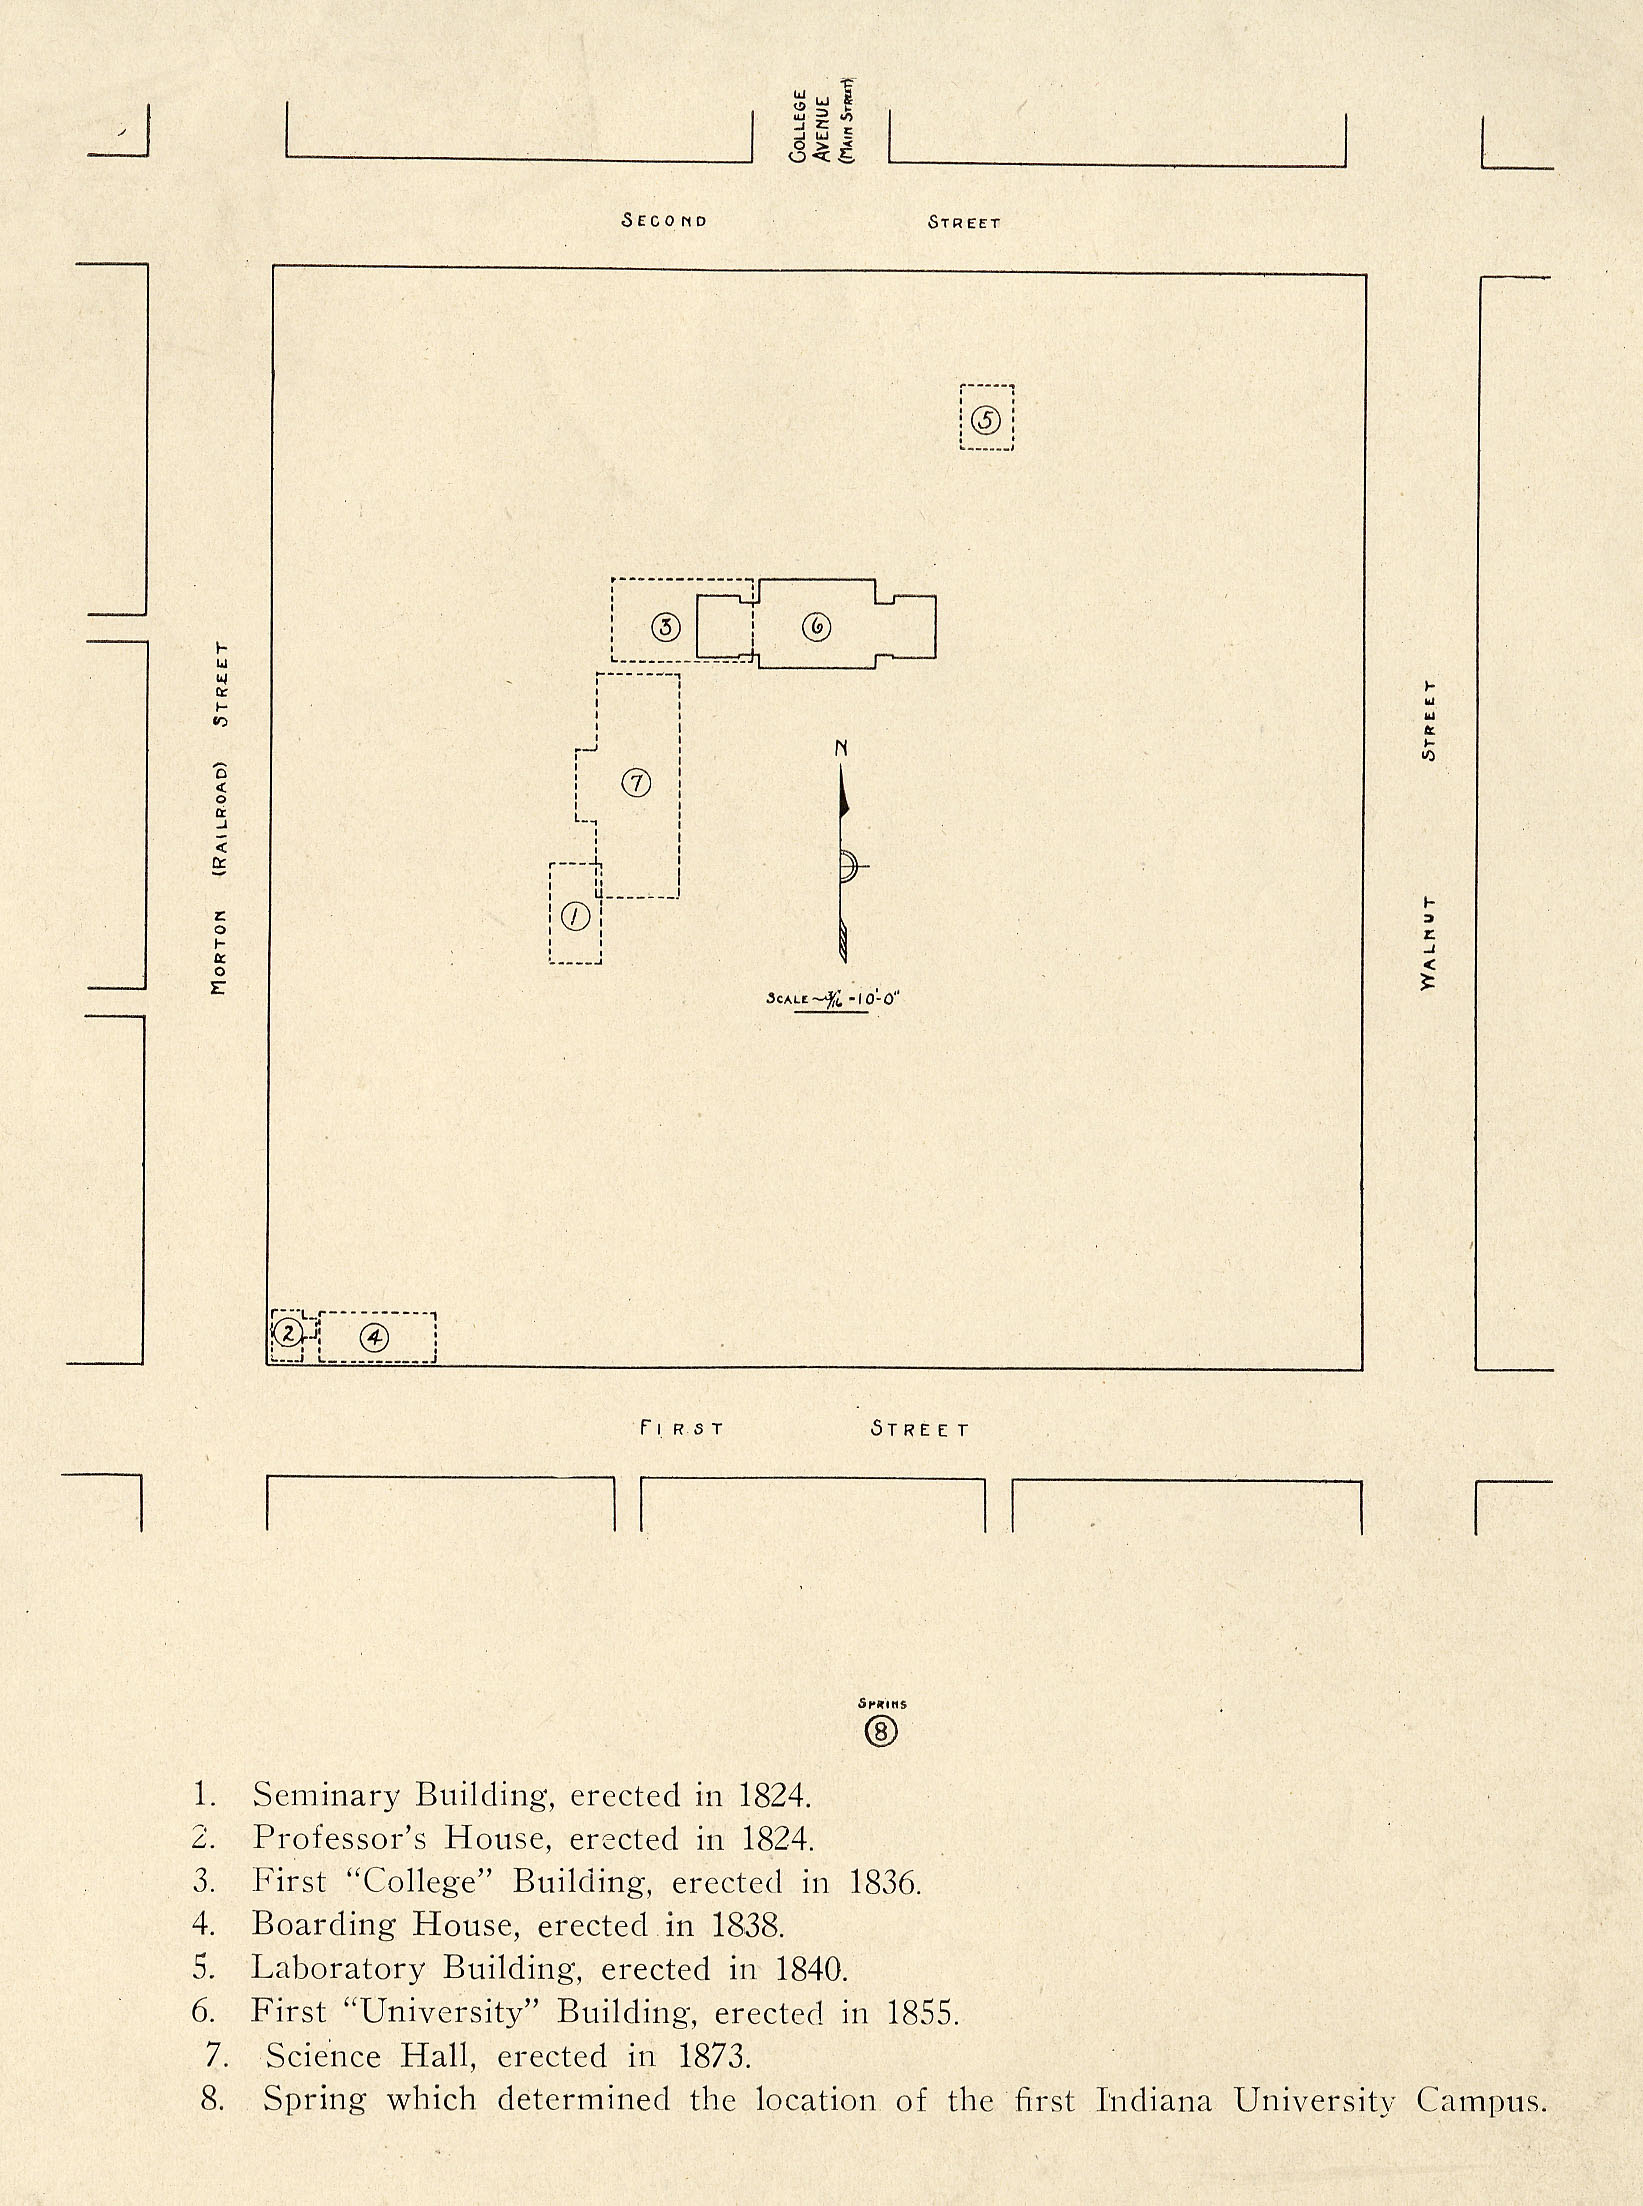 The original plan of the Seminary Square Campus. The baseball field was located in the southwest corner. College Avenue now runs through the old grounds which since have been converted.